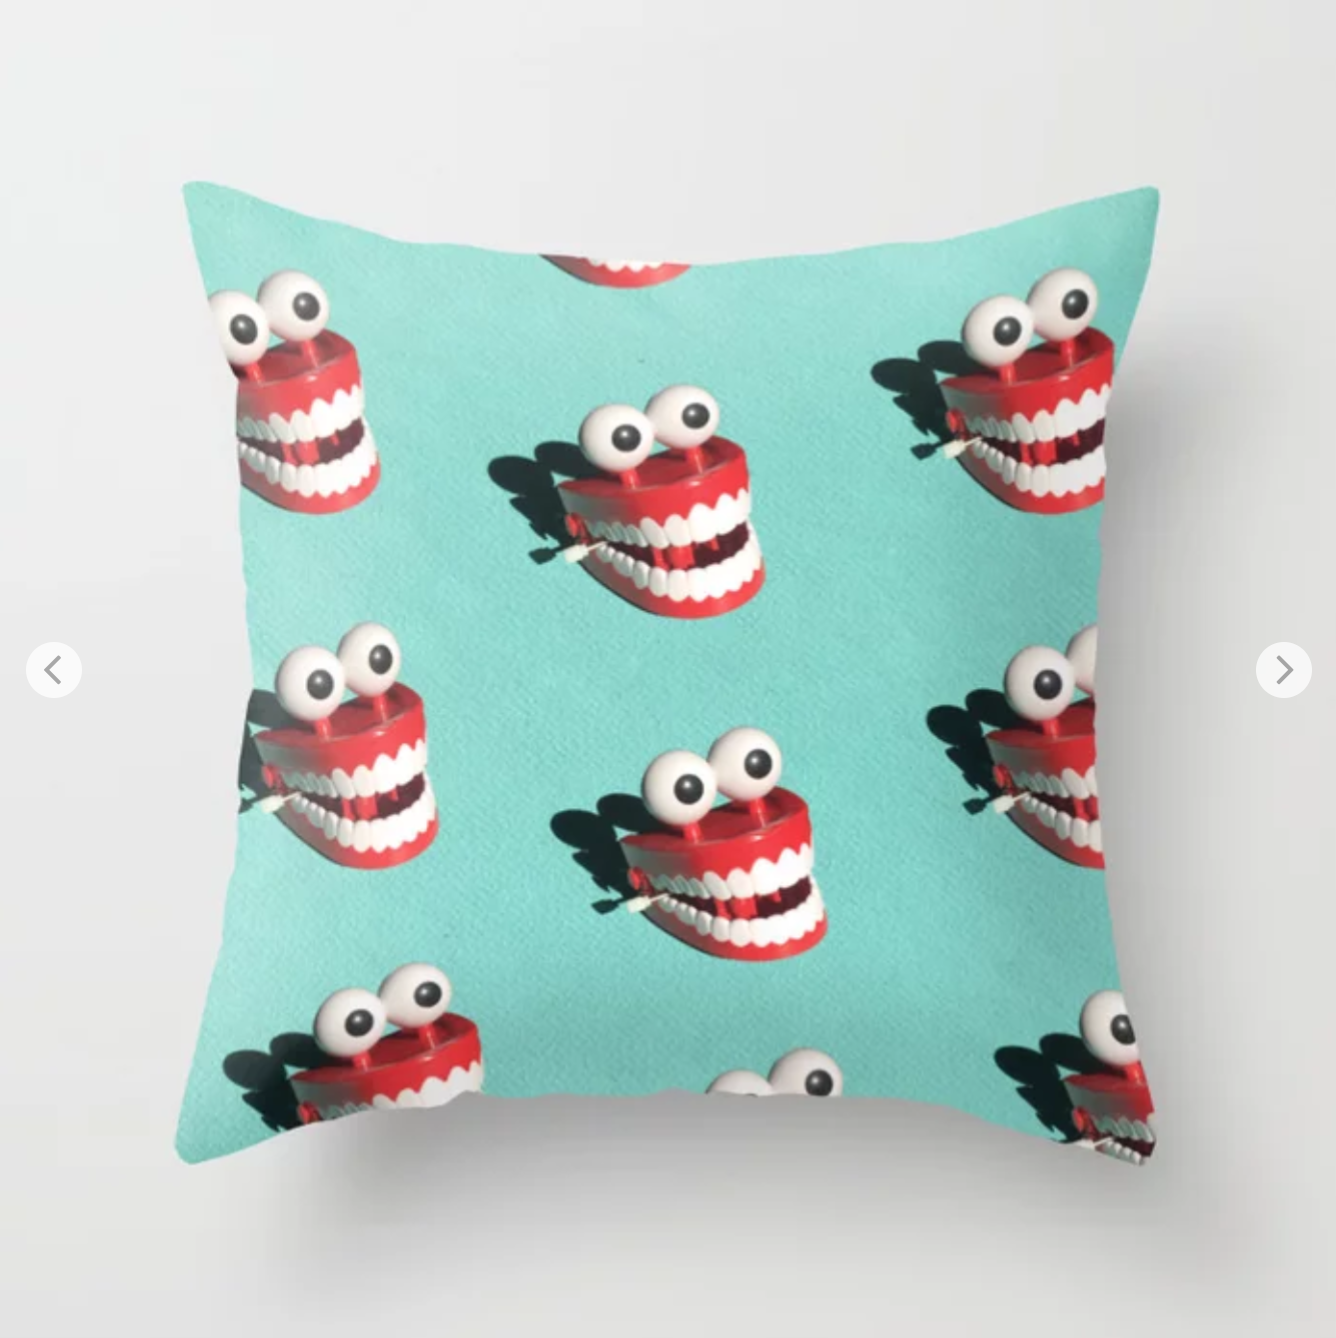 Mr Teeth @ Society6. Shop     here.